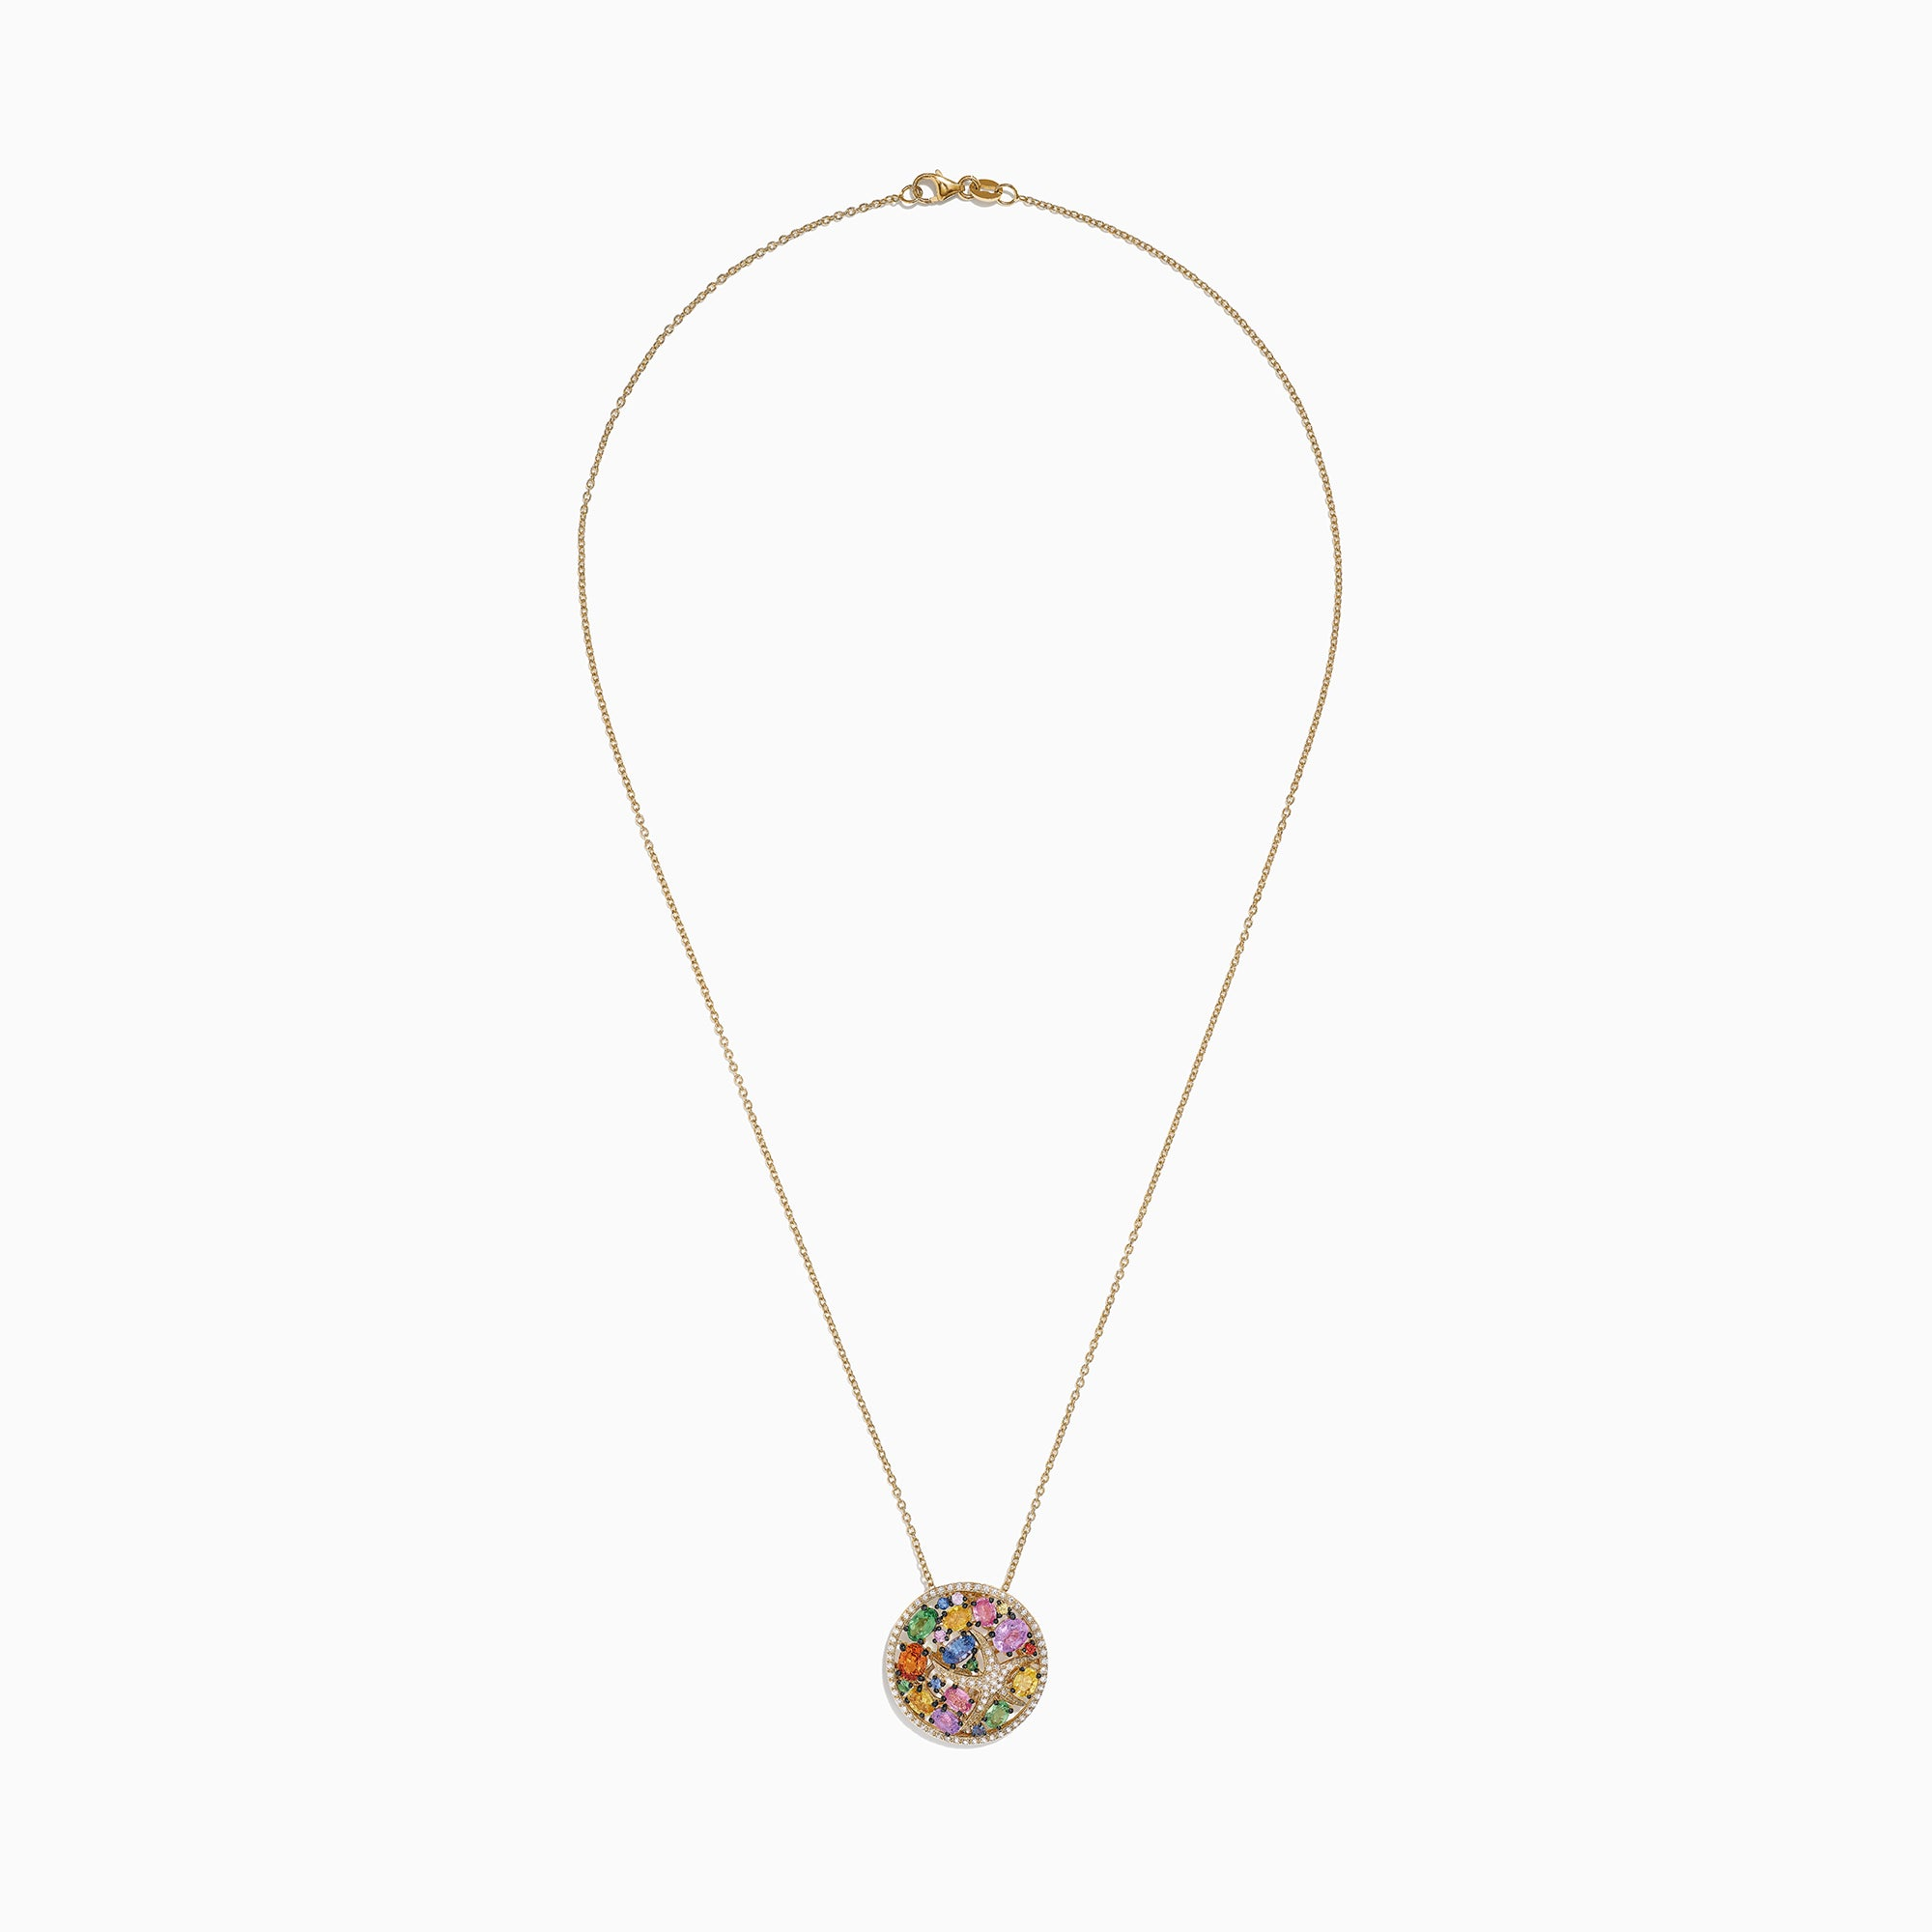 Effy Watercolors 14K Yellow Gold Multi Sapphire & Diamond Pendant, 3.65 TCW